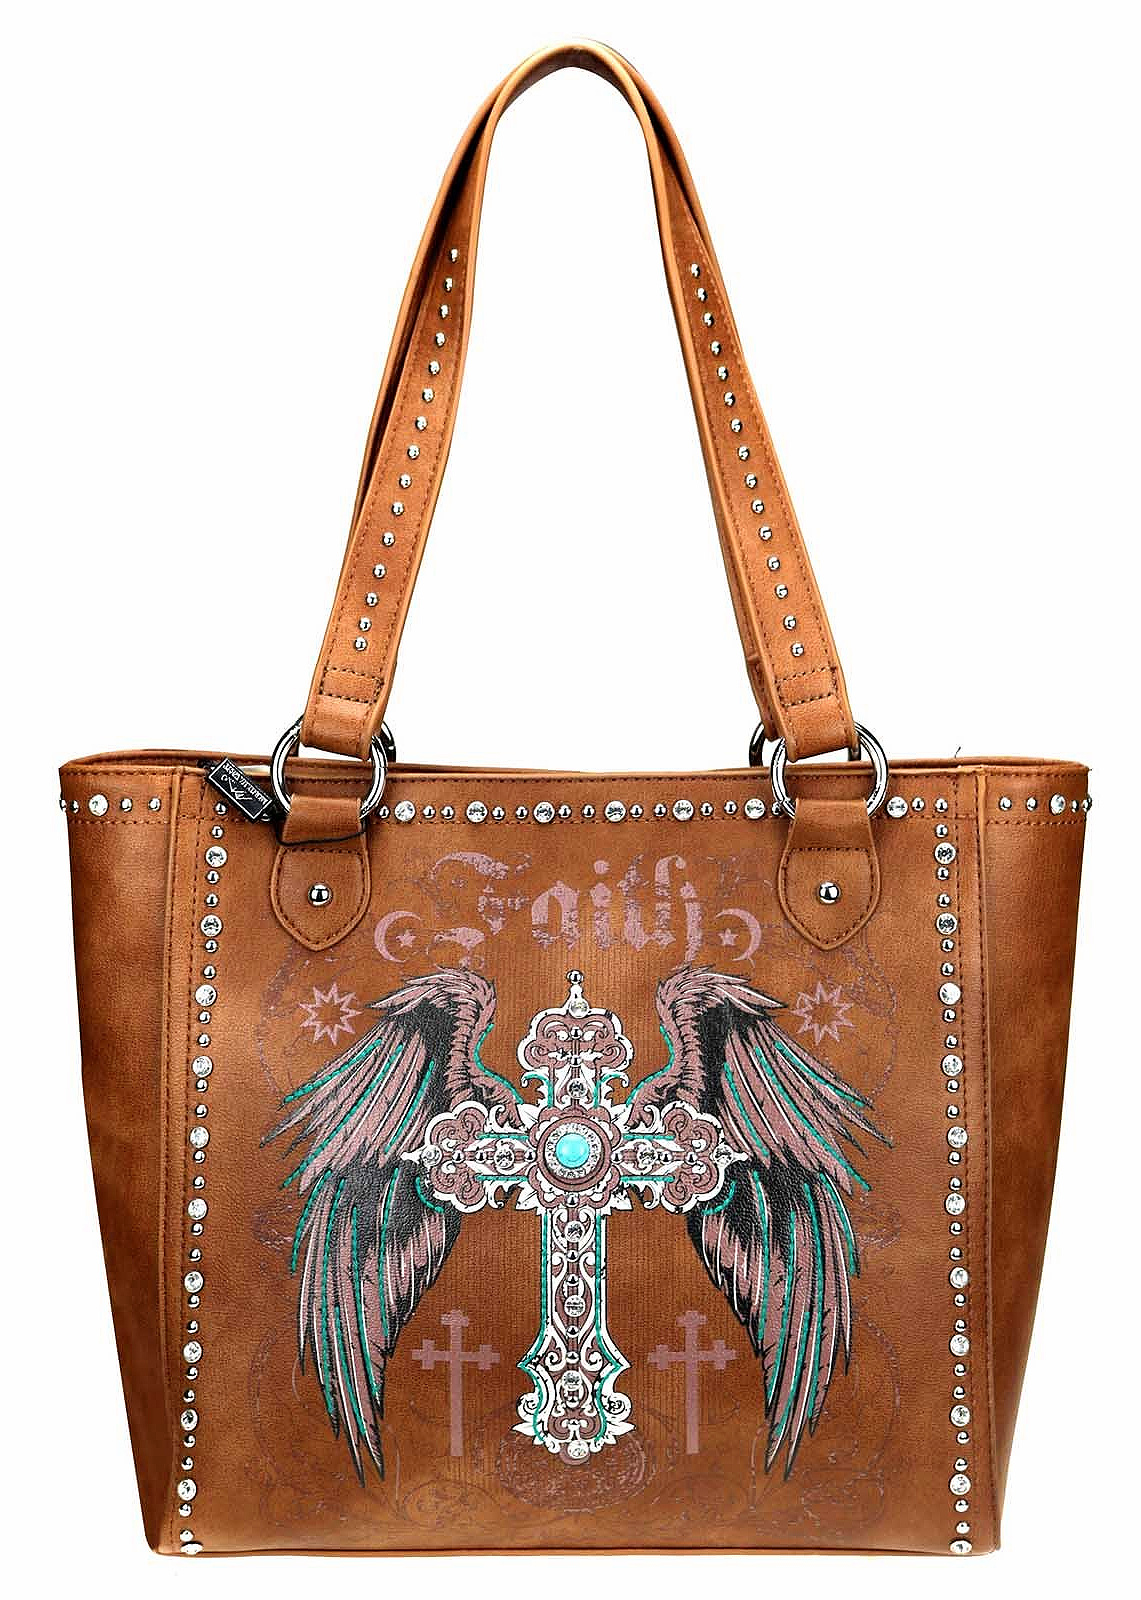 CHRISTIAN COWGIRL HANDBAG  Embroidery Silver Turquoise Cross Rhinestone & Silver Studded Faux Leather Concealed Handgun BROWN Tote Purse